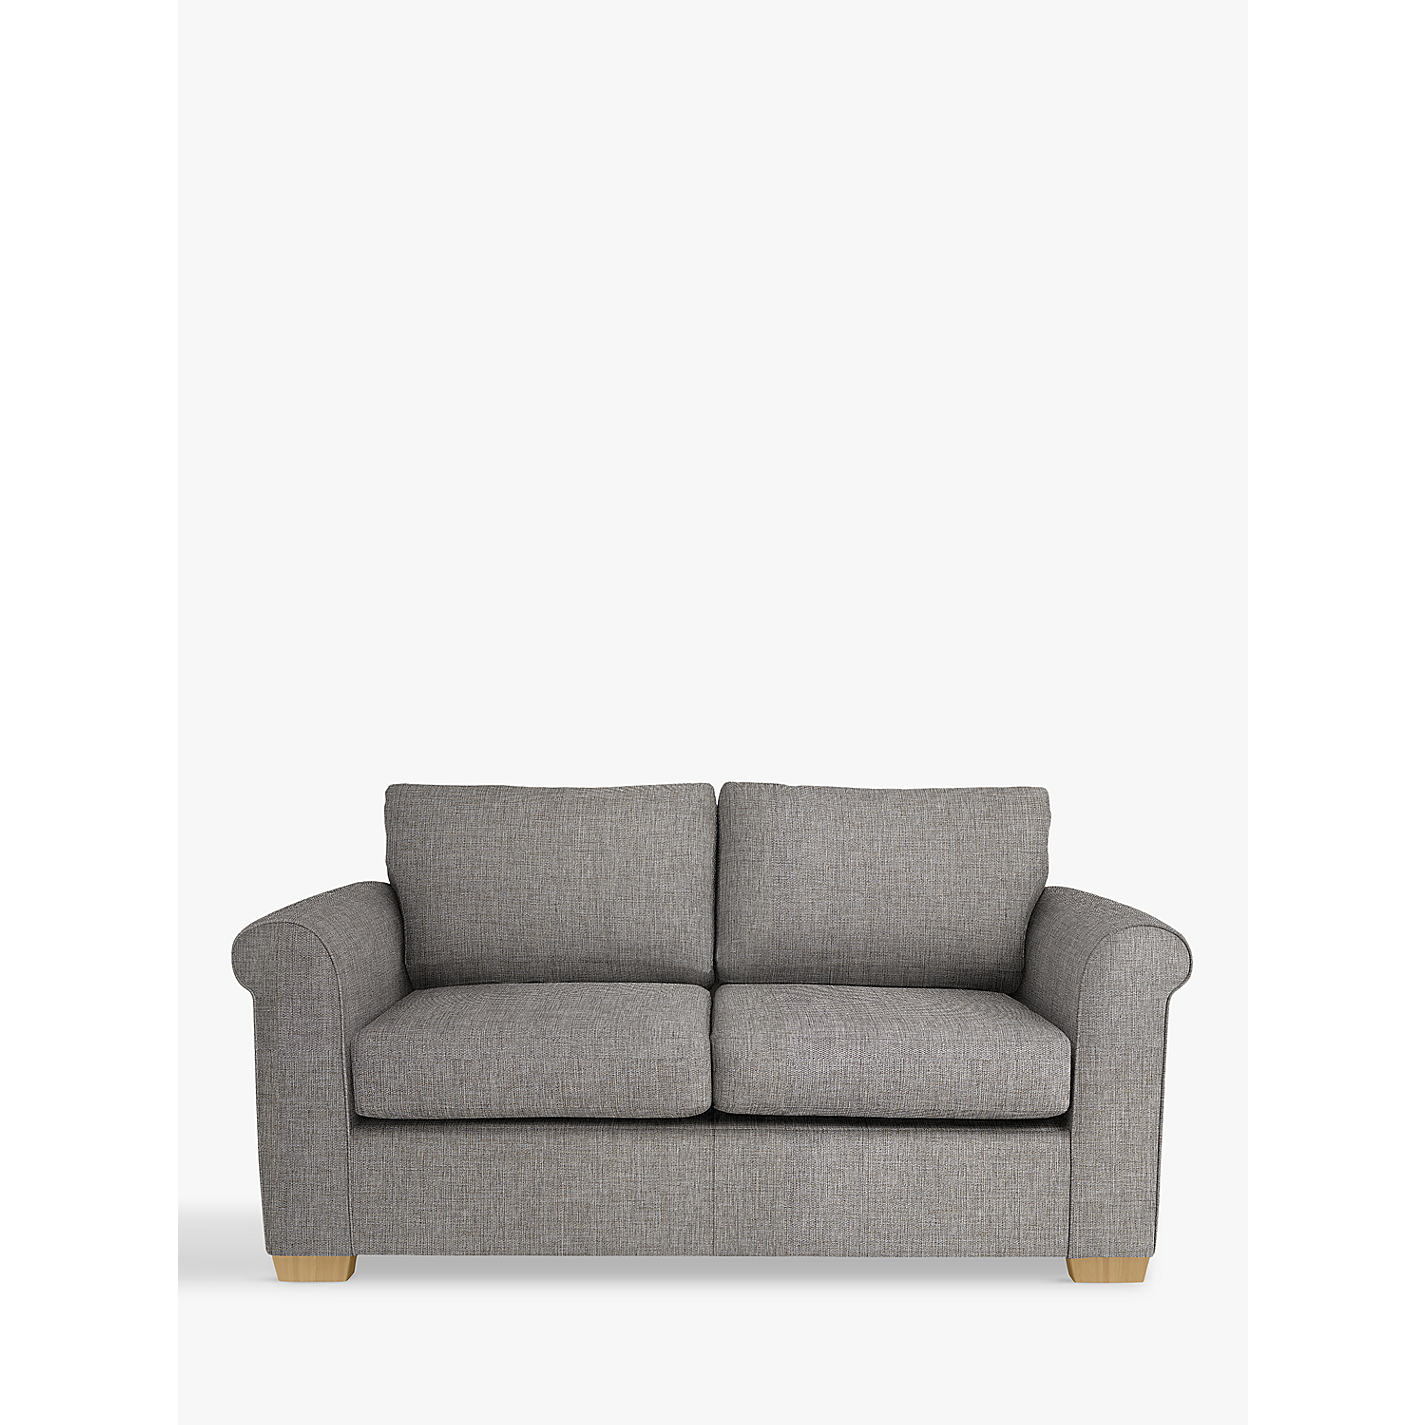 Buy John Lewis Malone 2 Seater Small Sofa Bed with Pocket Sprung